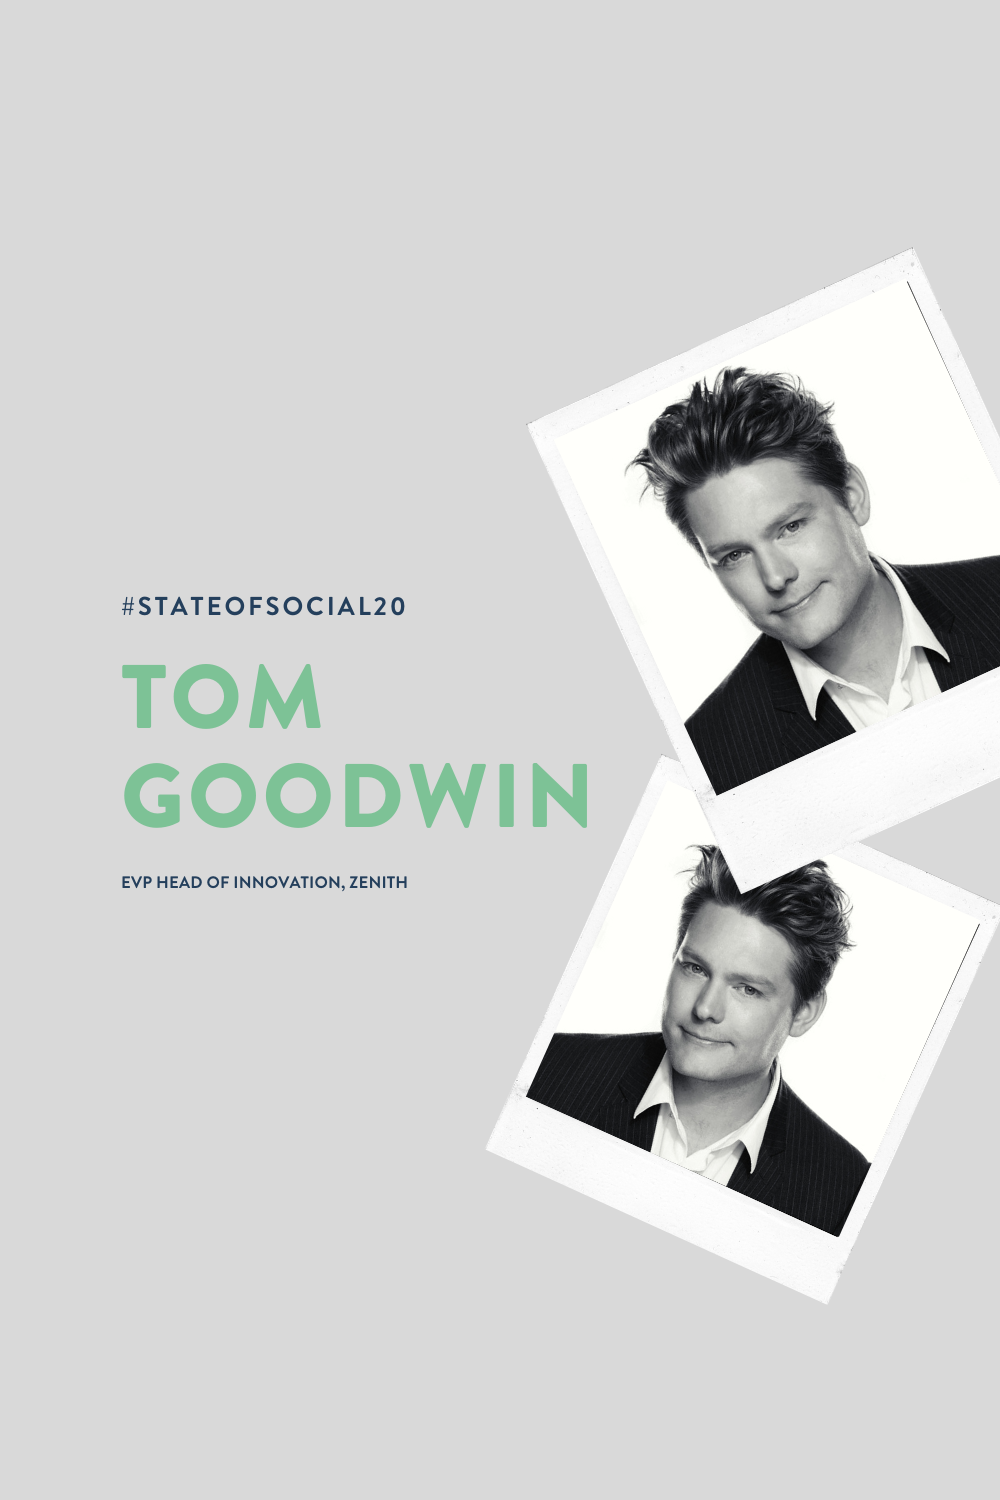 Join bestselling author of Digital Darwinism Tom Goodwin at State of Social '20 and make sure you're among the fittest to survive and thrive in the disruptive dog-eat-dog domain of digital marketing.